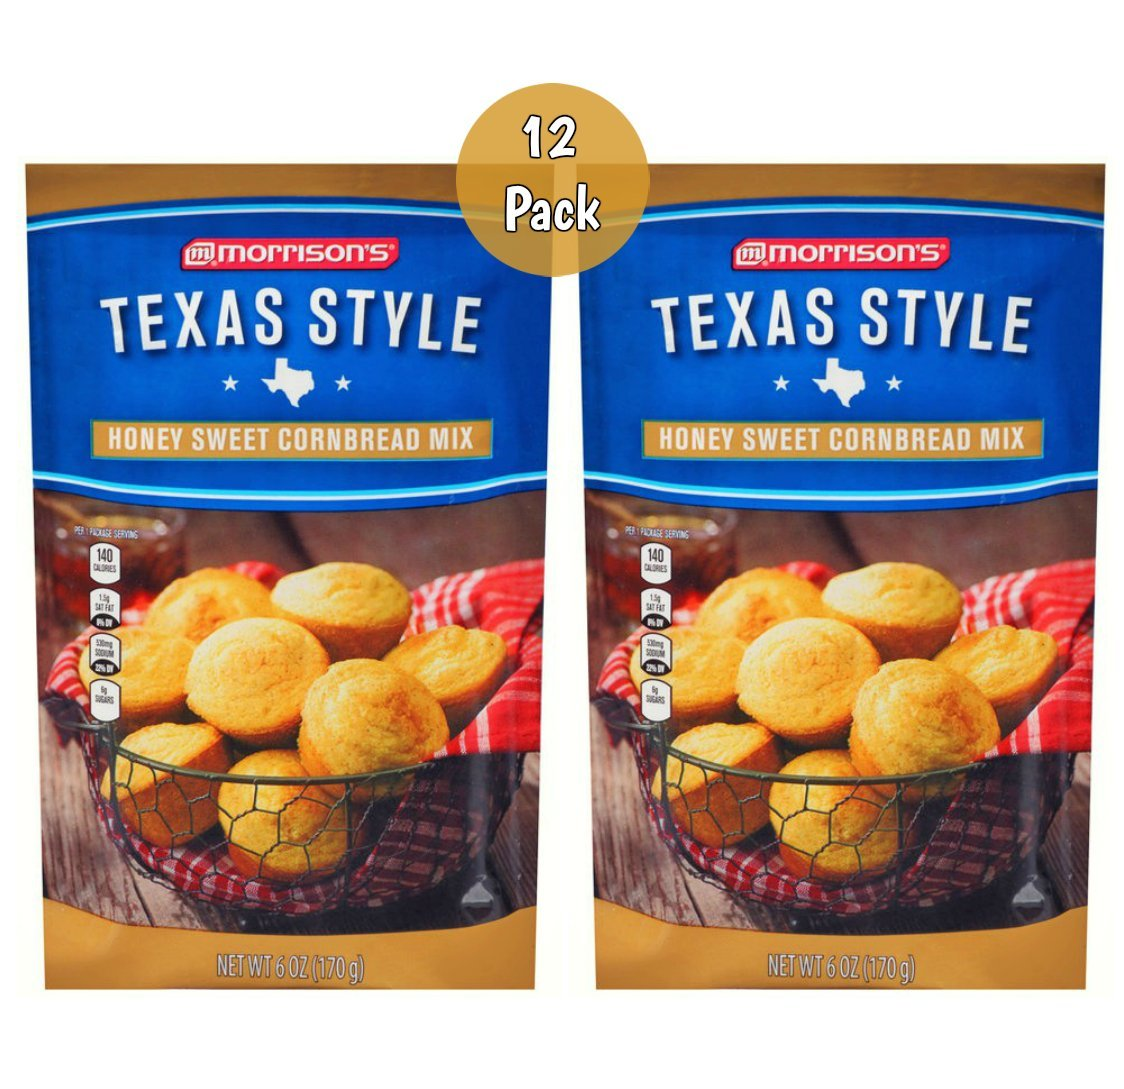 Morrison's Texas Style Honey Sweet Cornbread Mix - 12 Pack (16oz) by FCV